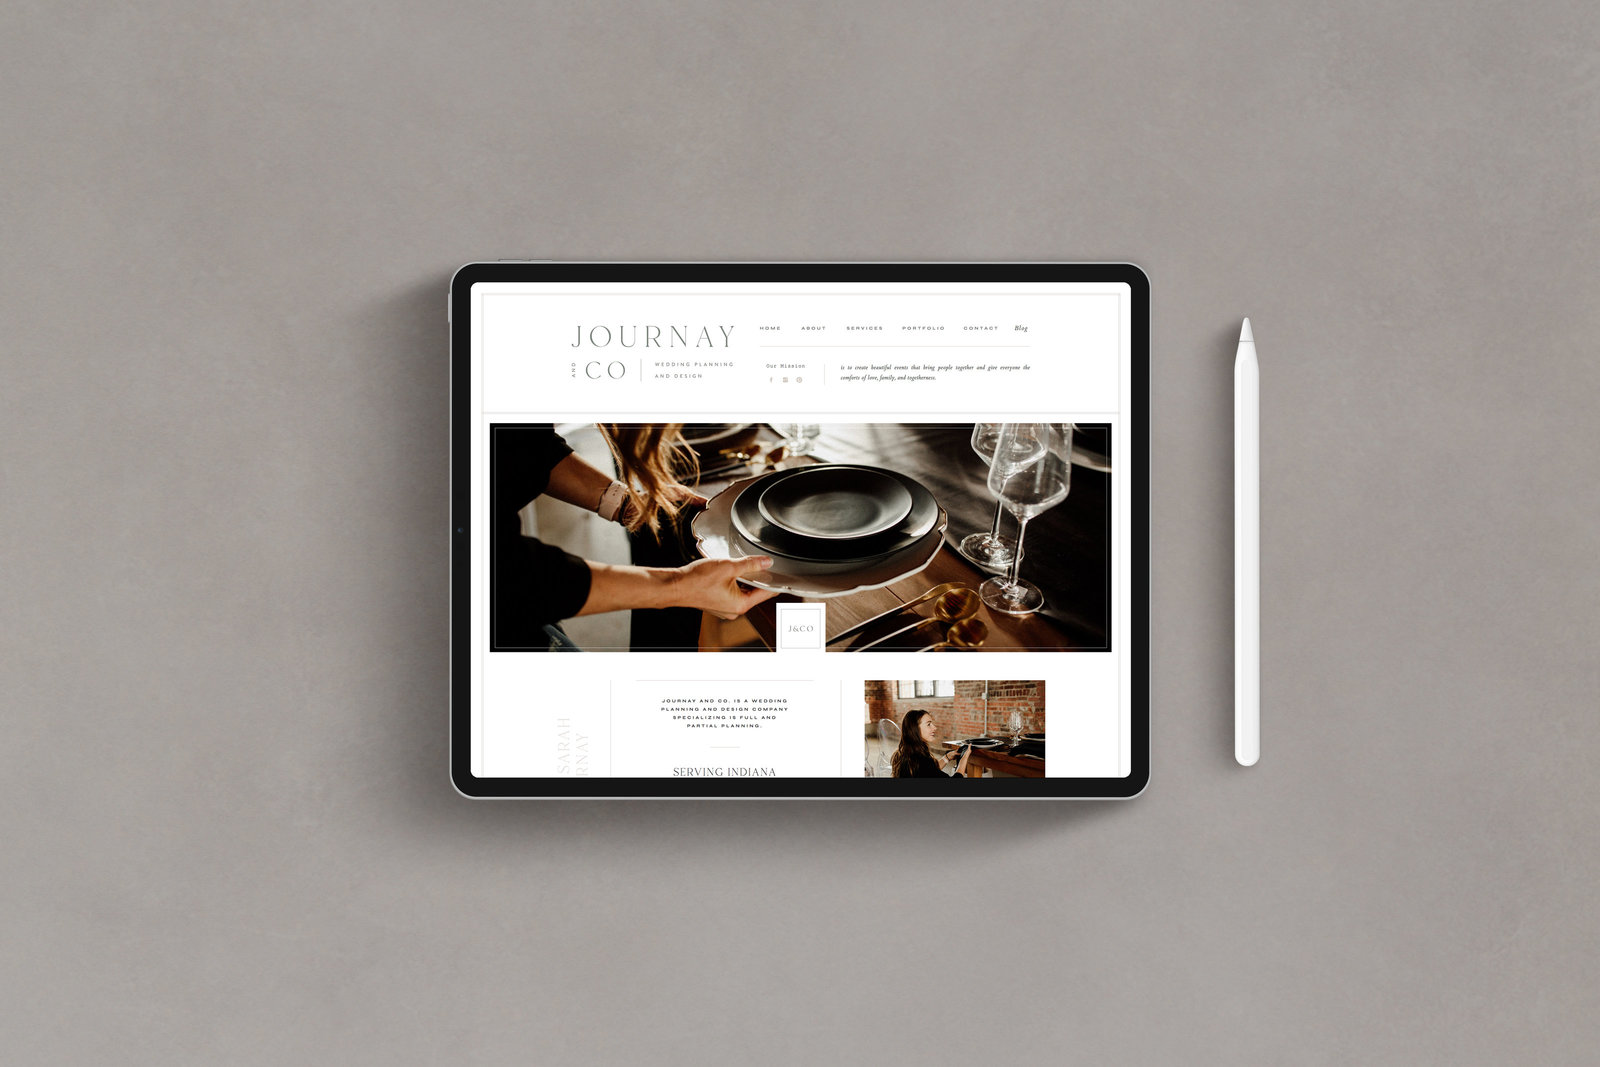 Journay and Co - Formerly Blush Events - Custom Brand and Showit Web Design by With Grace and Gold - Showit Theme, Showit Themes, Showit Template, Showit Templates, Showit Design, Showit Designer - 6